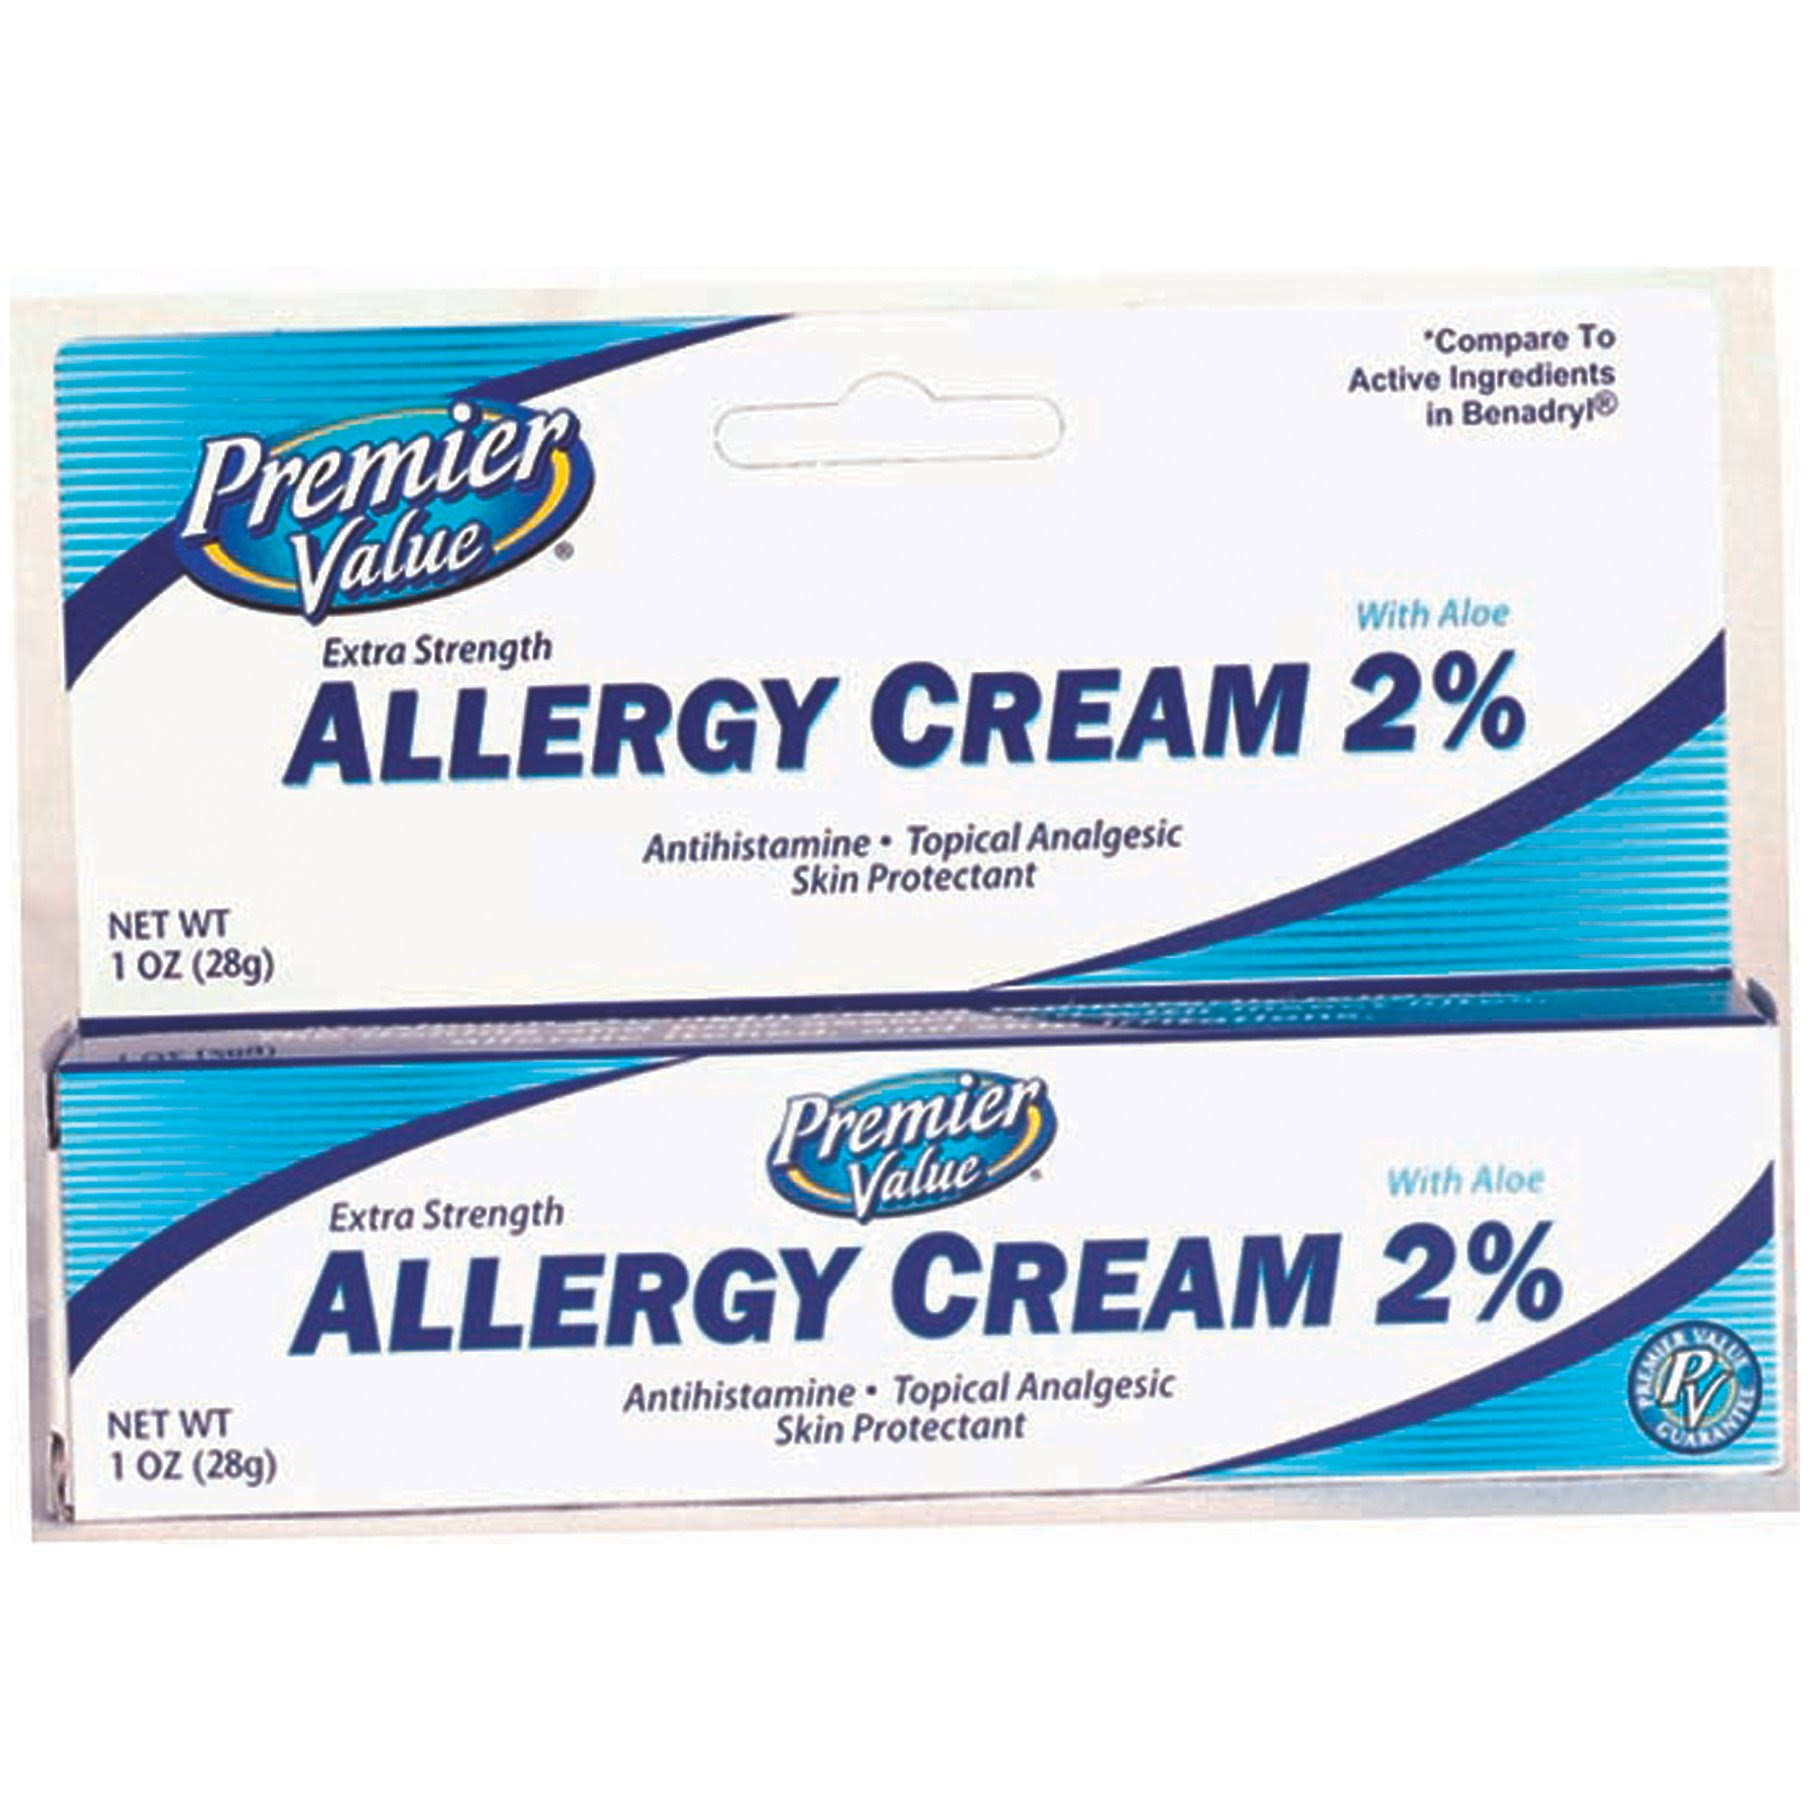 Premier Value Allergy Cream 2% - 1oz